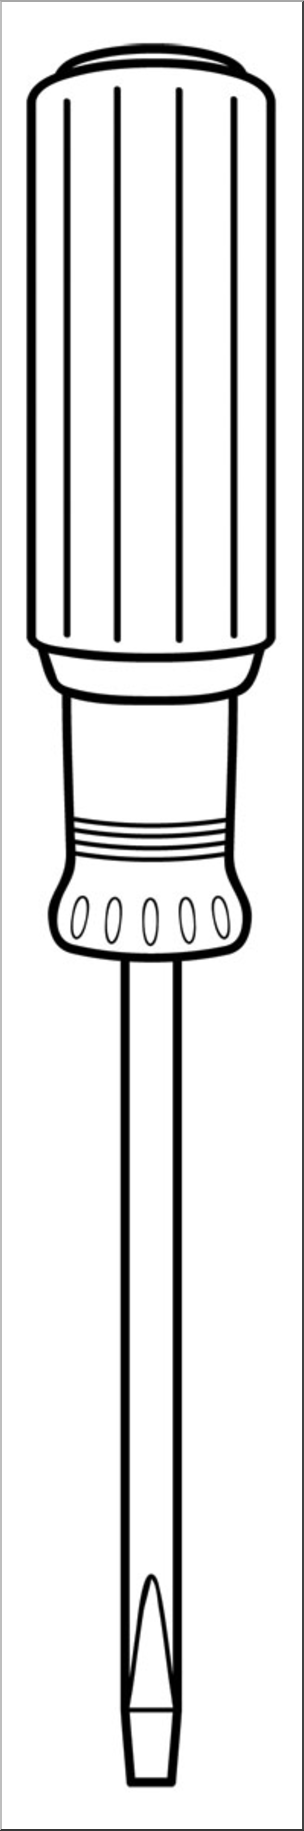 Screwdriver clipart clip art. Collection of free download